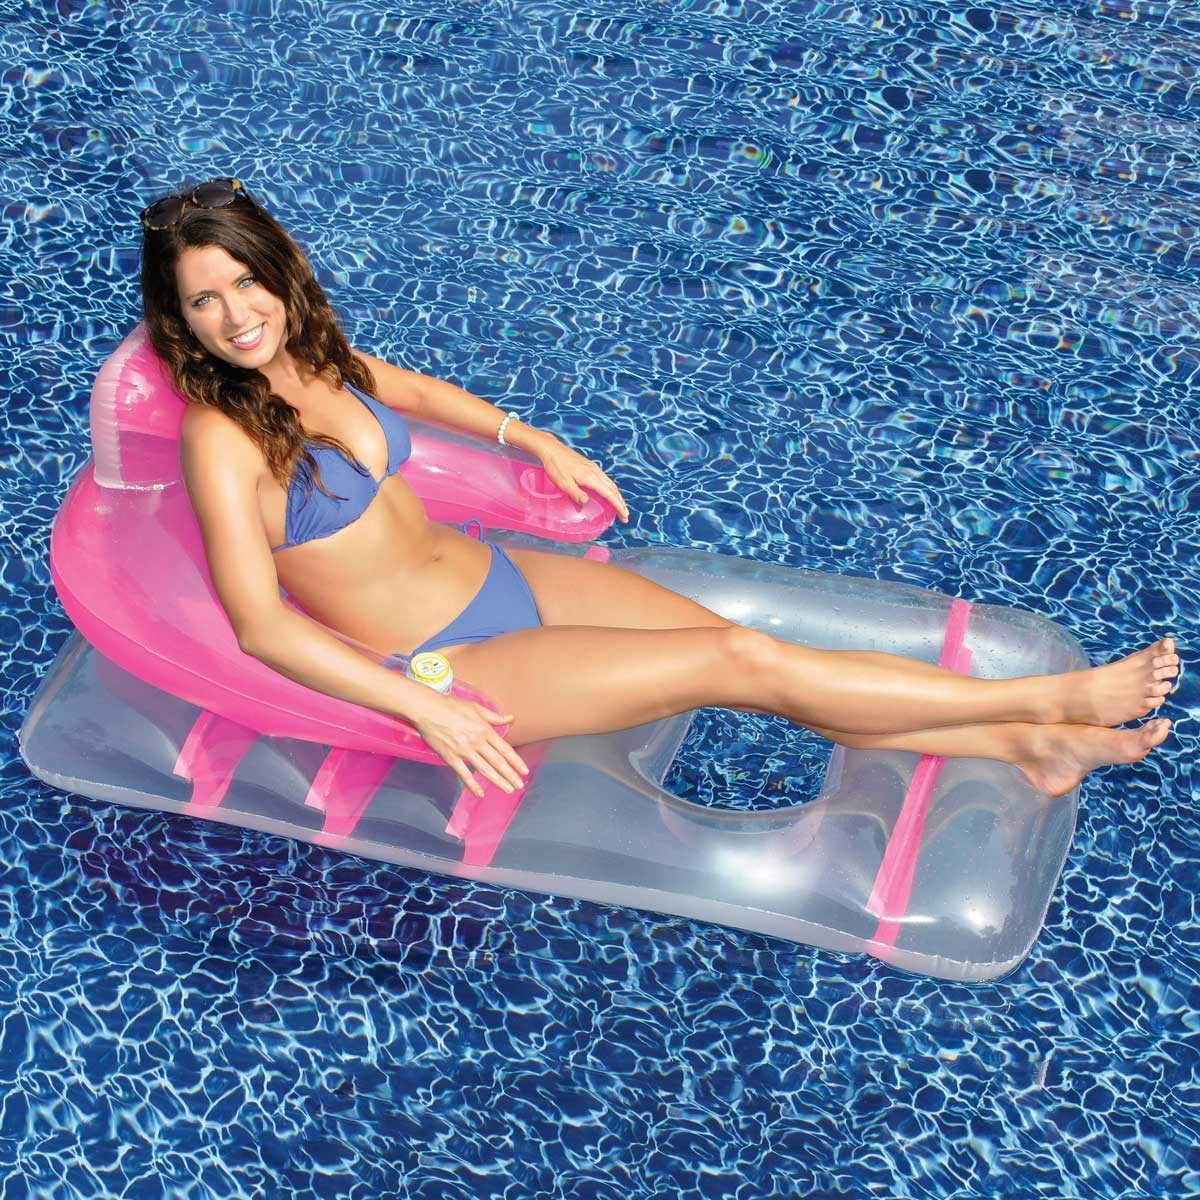 Swimways Float Pool Store Canada Deluxe Lounge Chair with Drinks Holder - Pink - Pool Store Canada